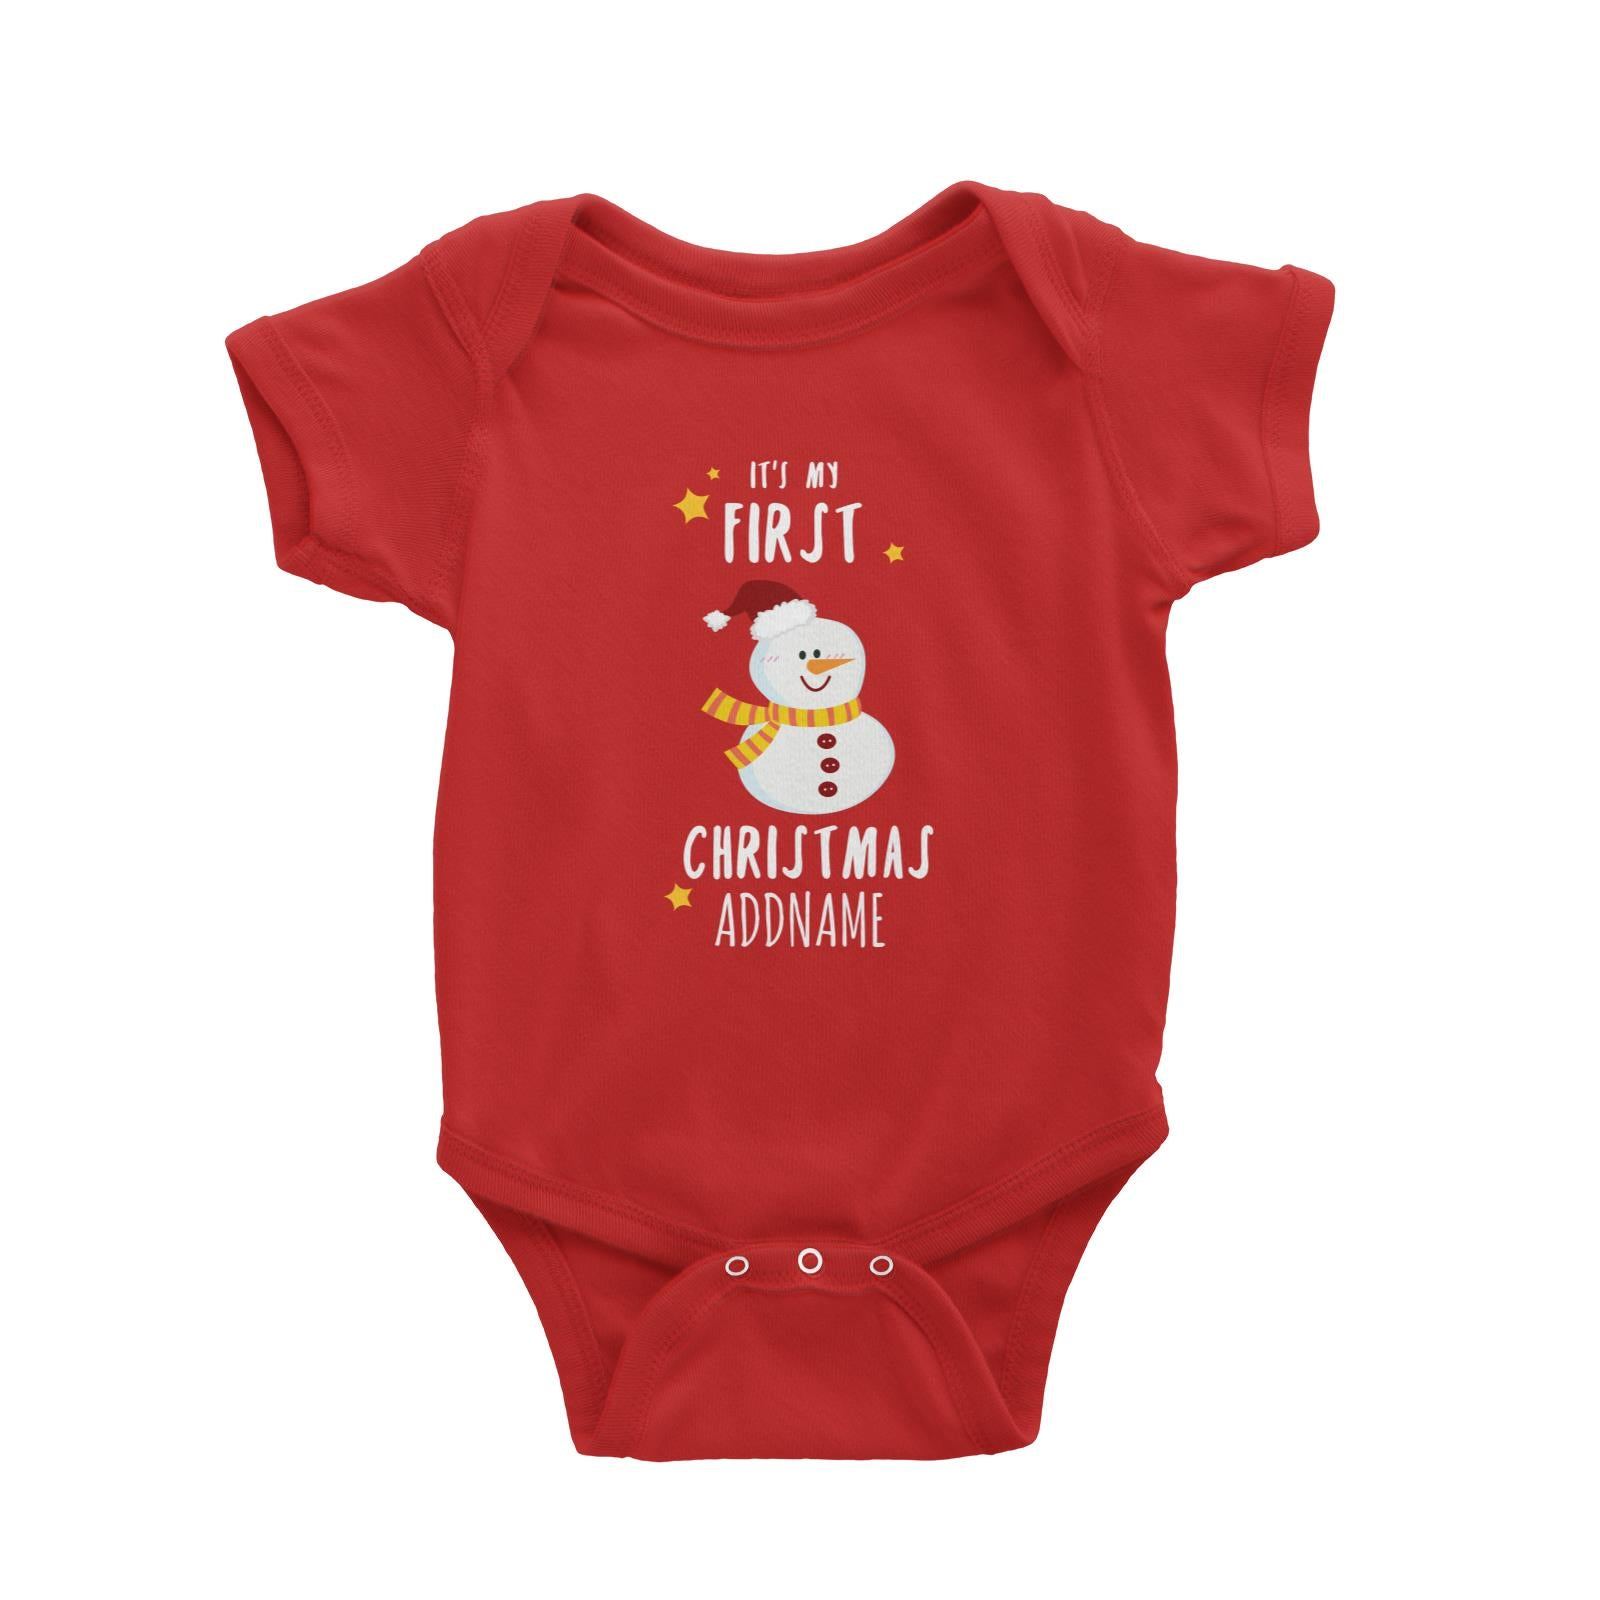 Cute Snowman First Christmas Addname Baby Romper  Personalizable Designs